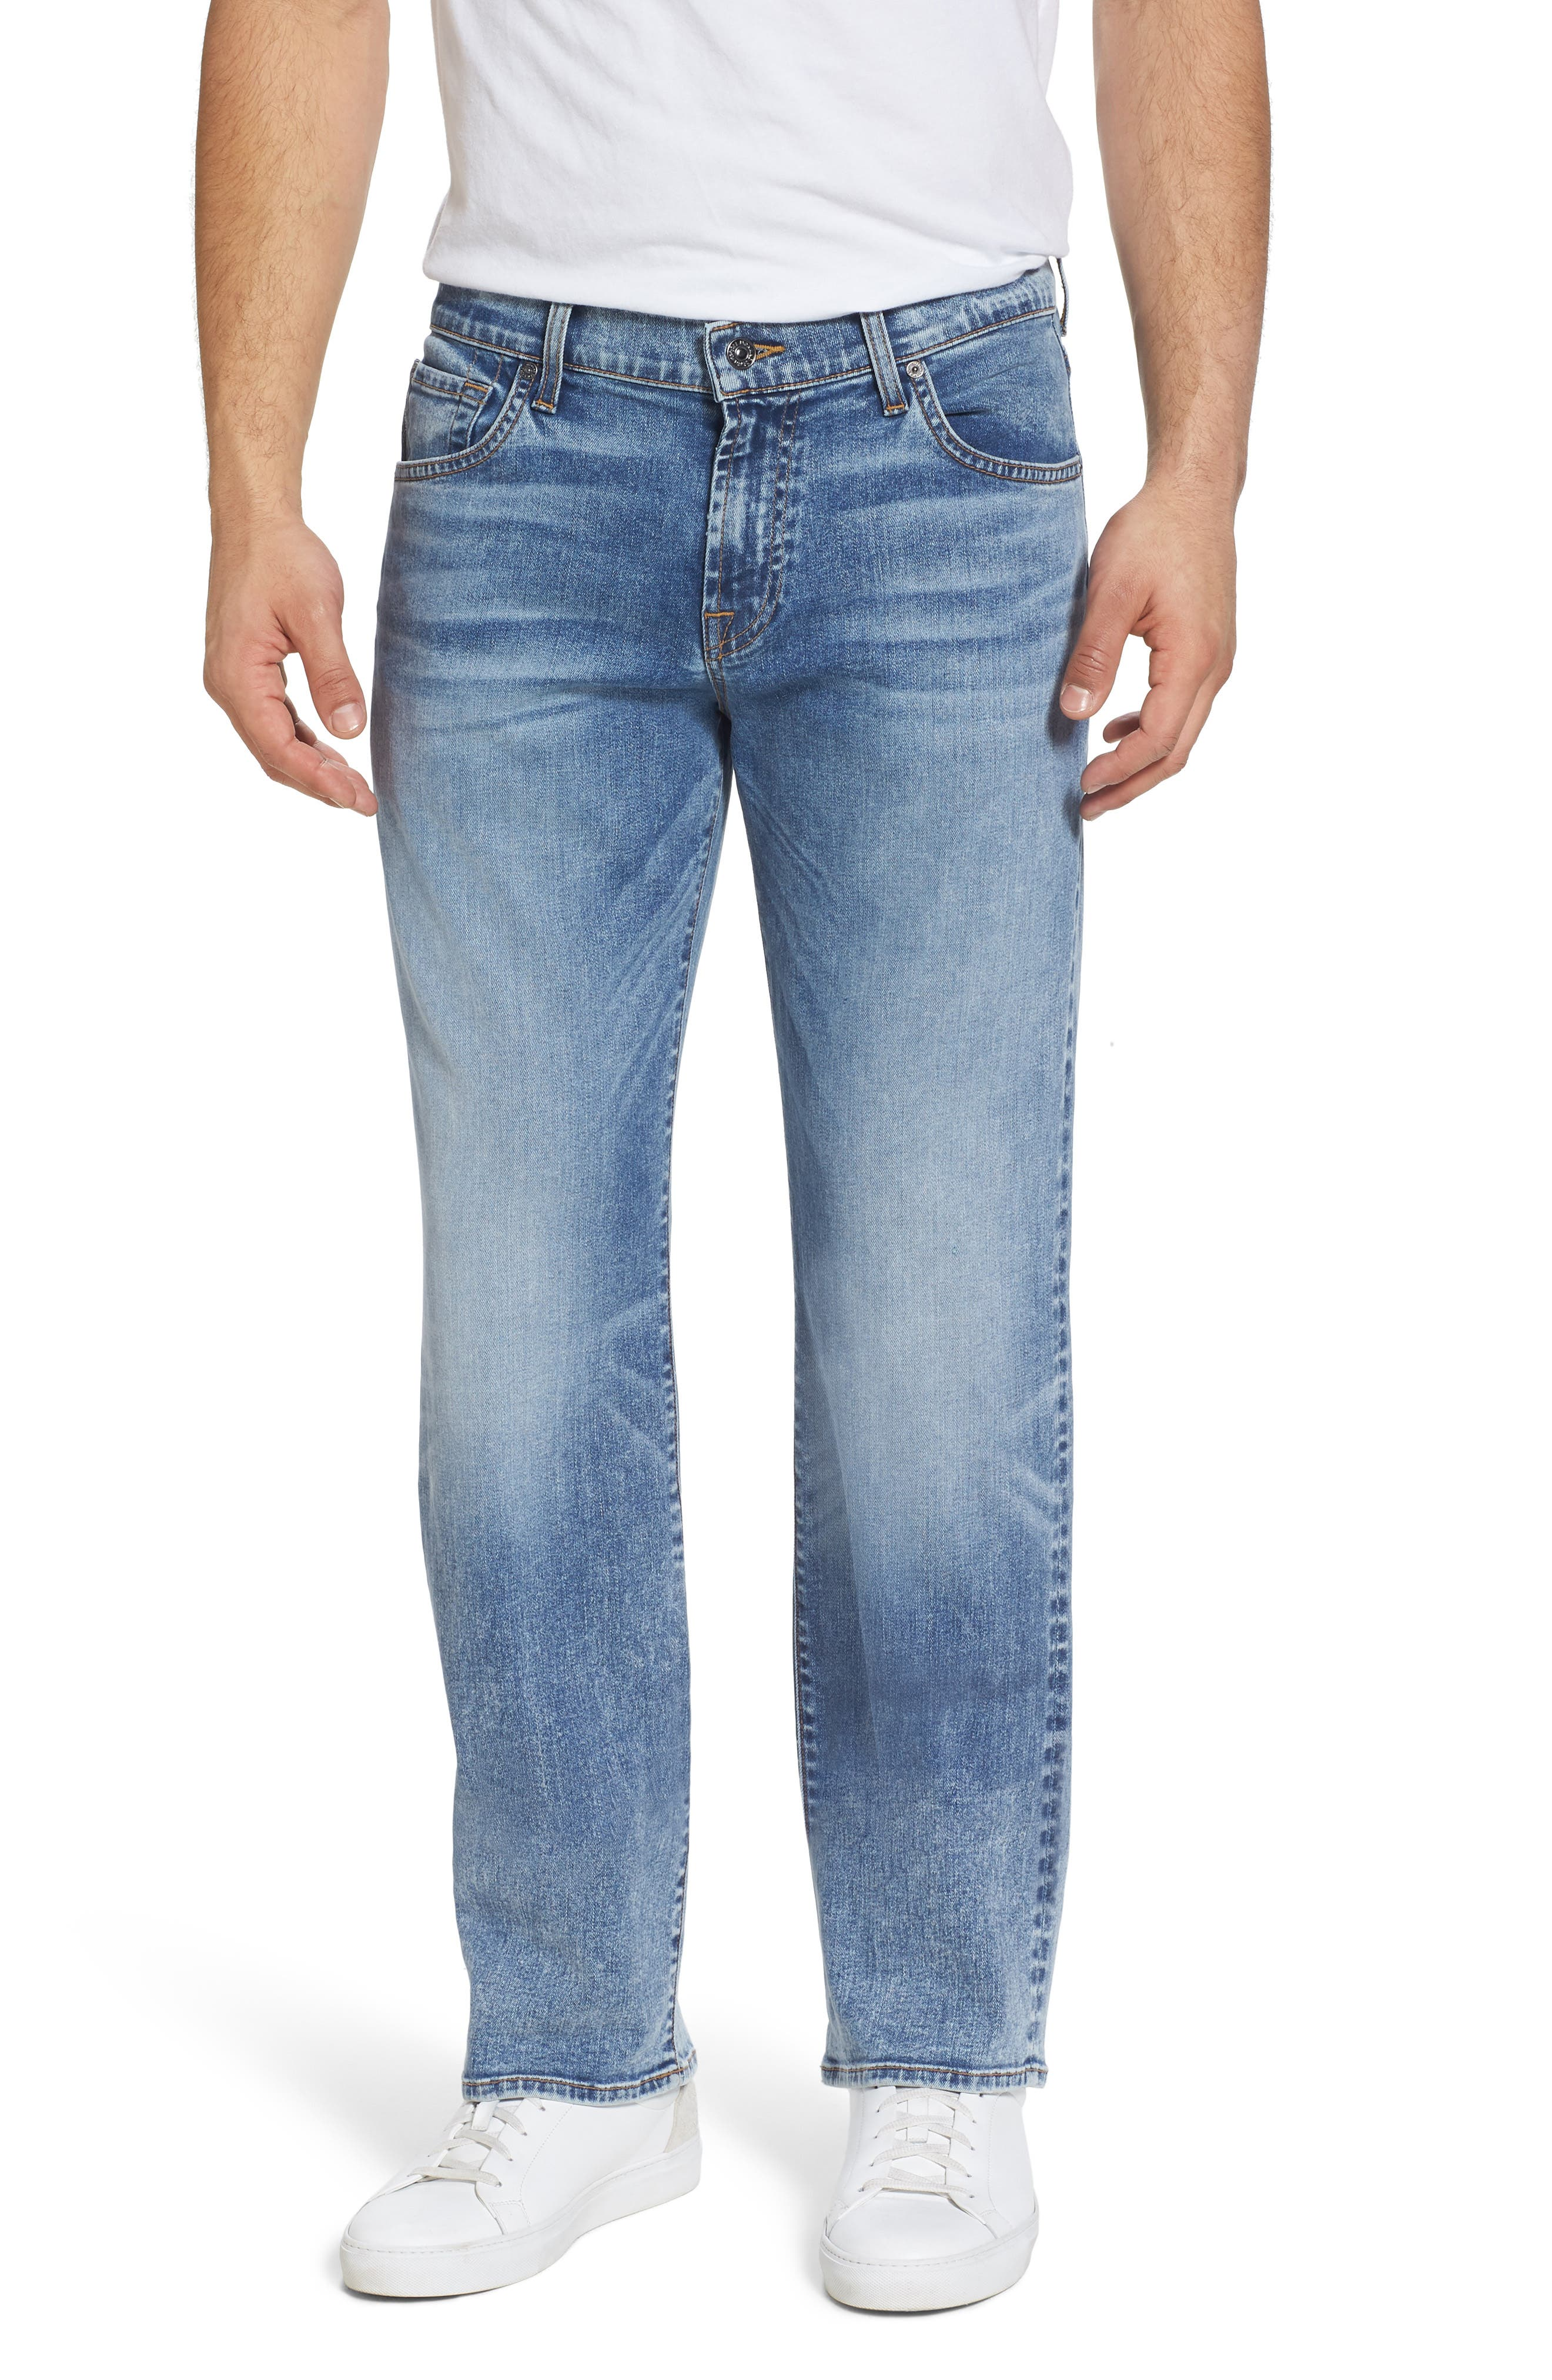 Austyn - Luxe Performance Relaxed Fit Jeans,                         Main,                         color, Death Valley